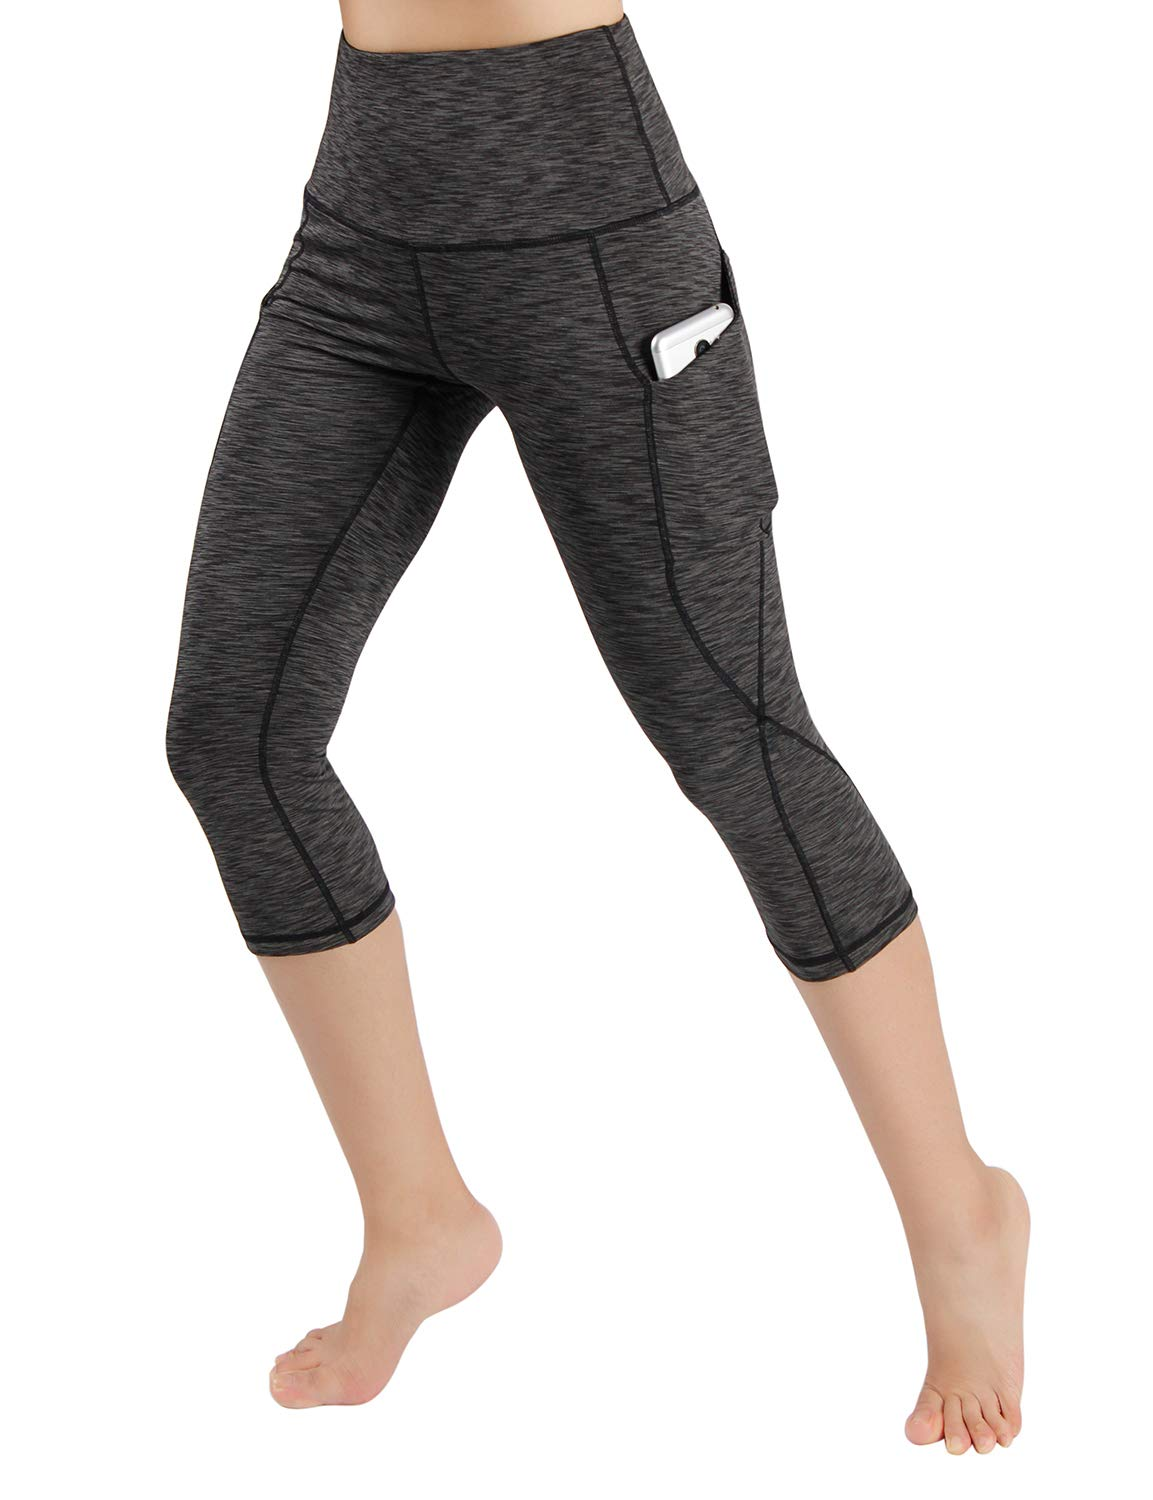 ODODOS Women's High Waist Yoga Capris with Pockets,Tummy Control,Workout Capris Running 4 Way Stretch Yoga Leggings with Pockets,SpaceDyeCharcoal,X-Small by ODODOS